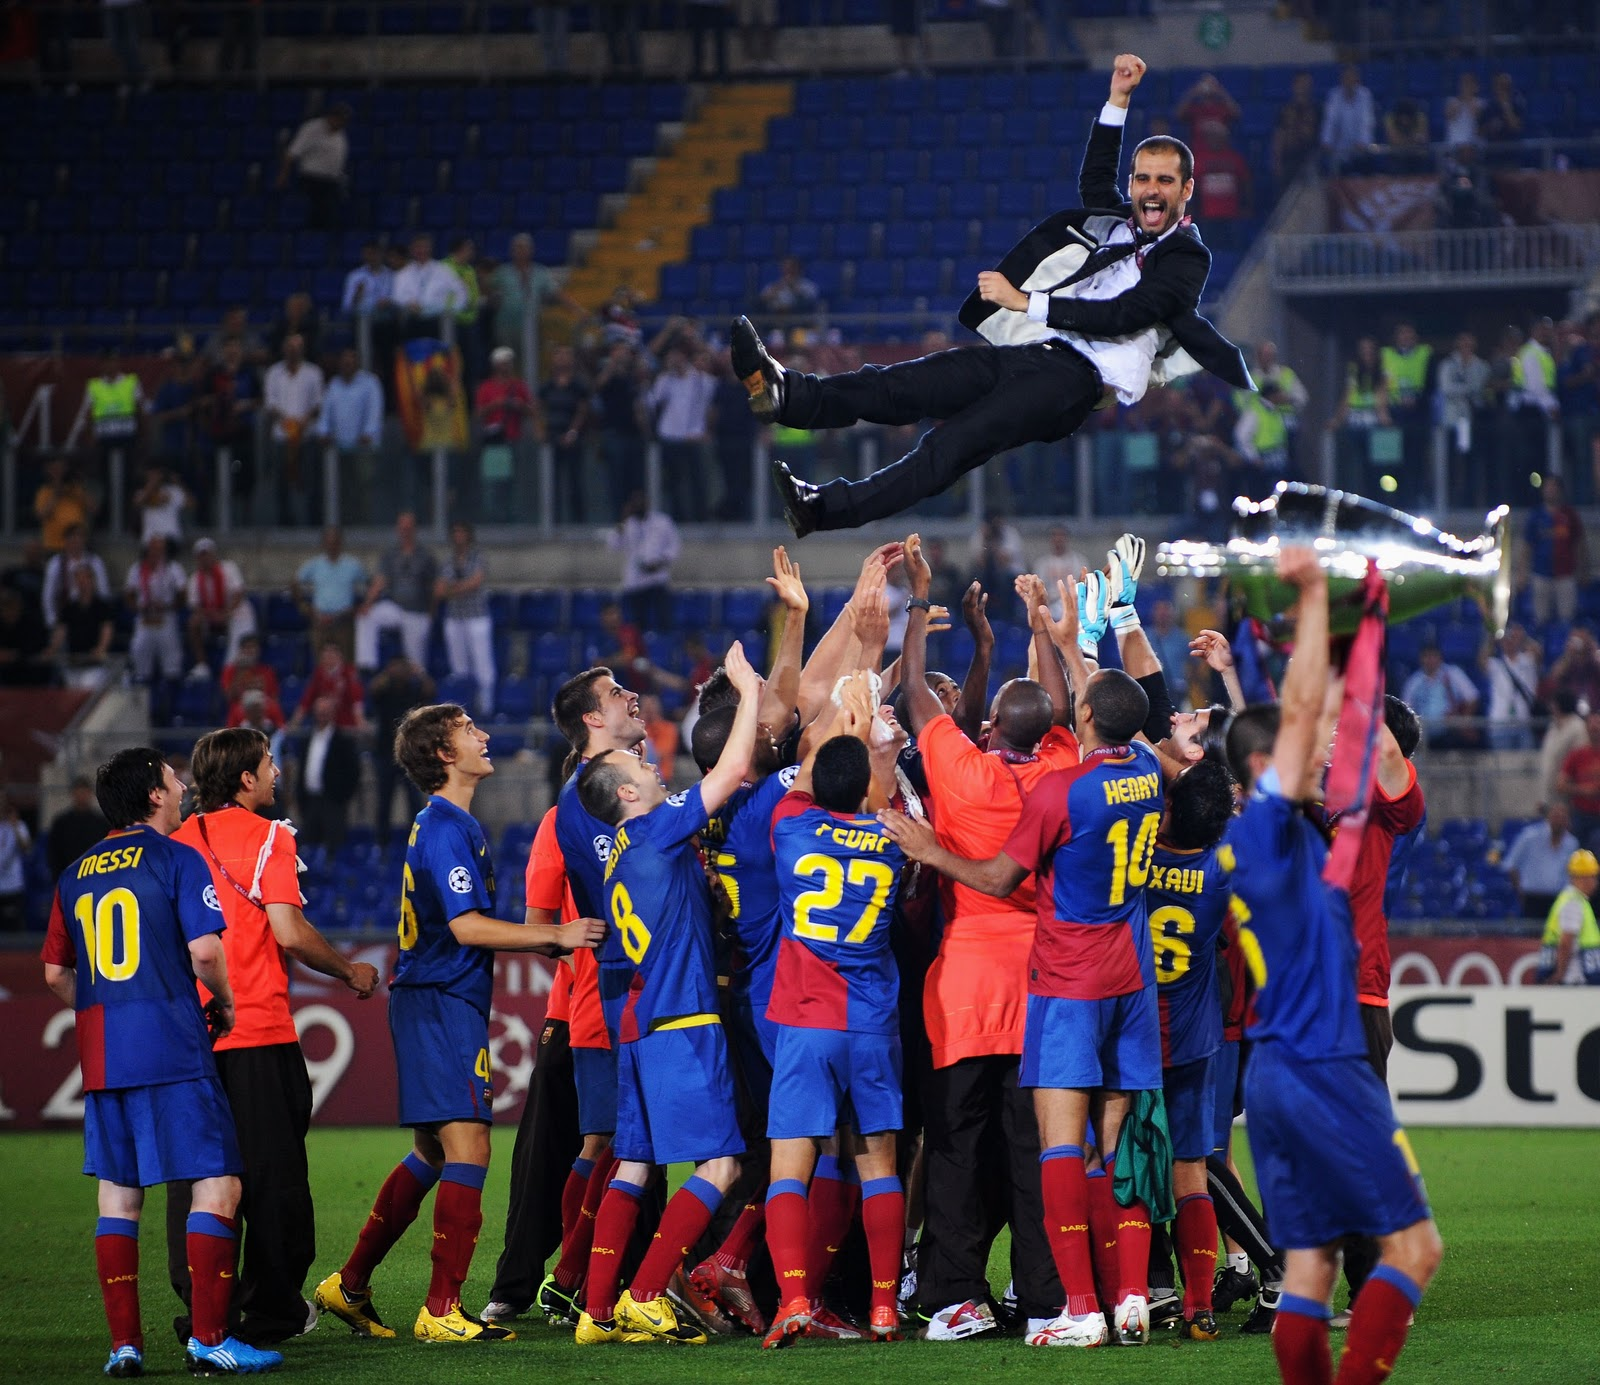 As manager of Barcelona between 2008-2012, Guardiola (mid-air) won it all. Fourteen titles is a mighty hall but critics are starting to wonder how much of that success should be attributed to his influence or to the glut of world class talent he had at his disposal.